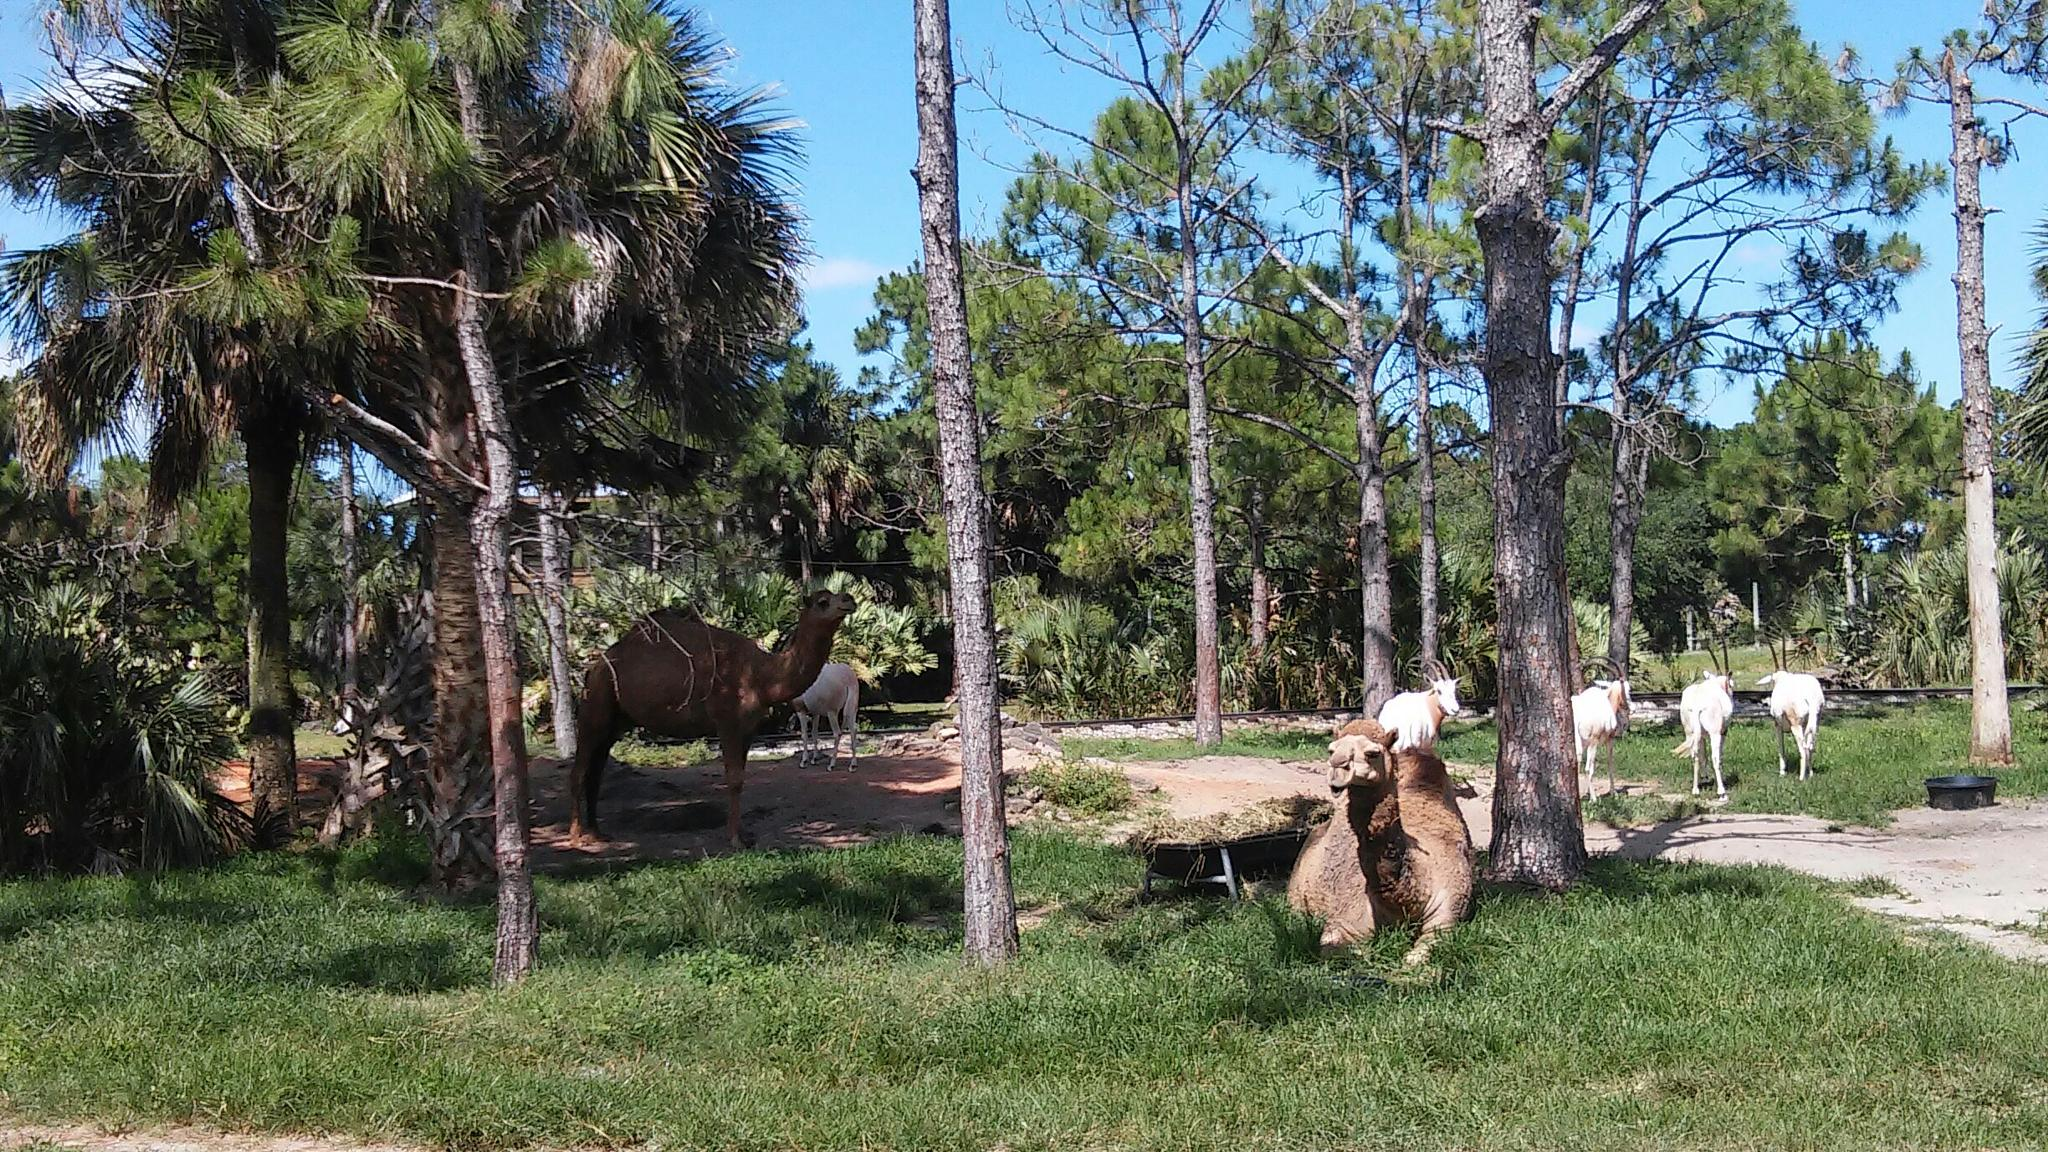 Brevard Zoo in Melbourne, FL USA by grannypam